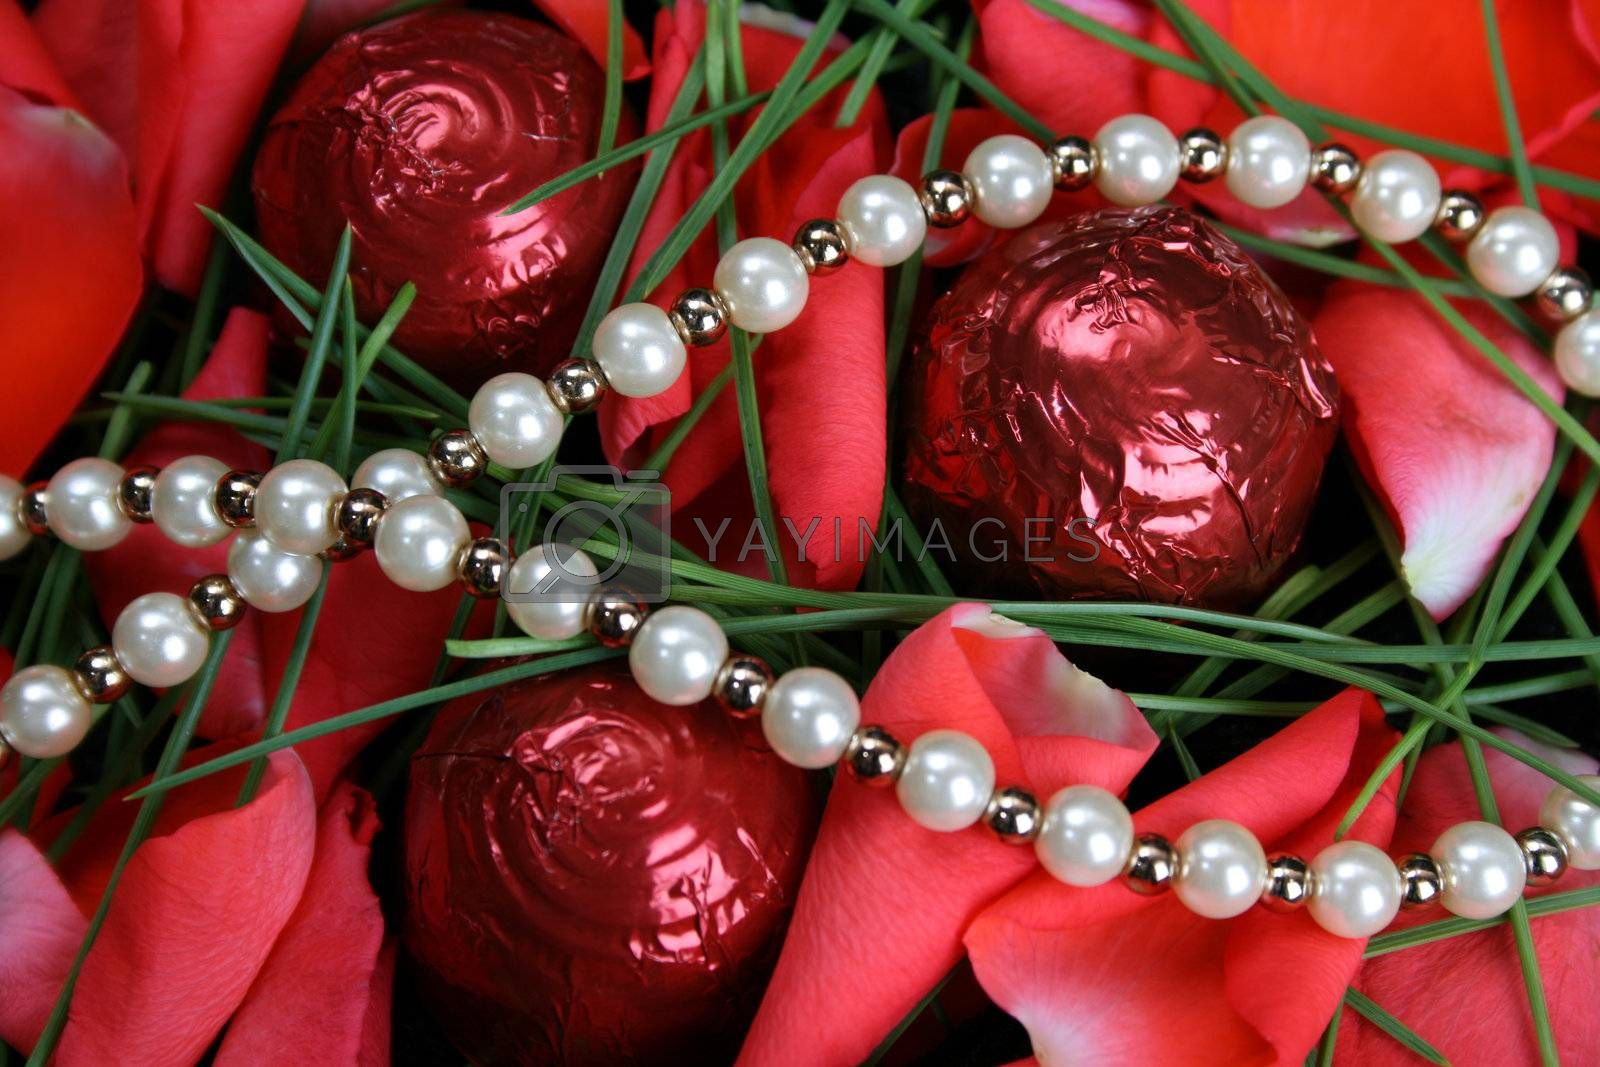 Valetines day pearls with chocolates and petals